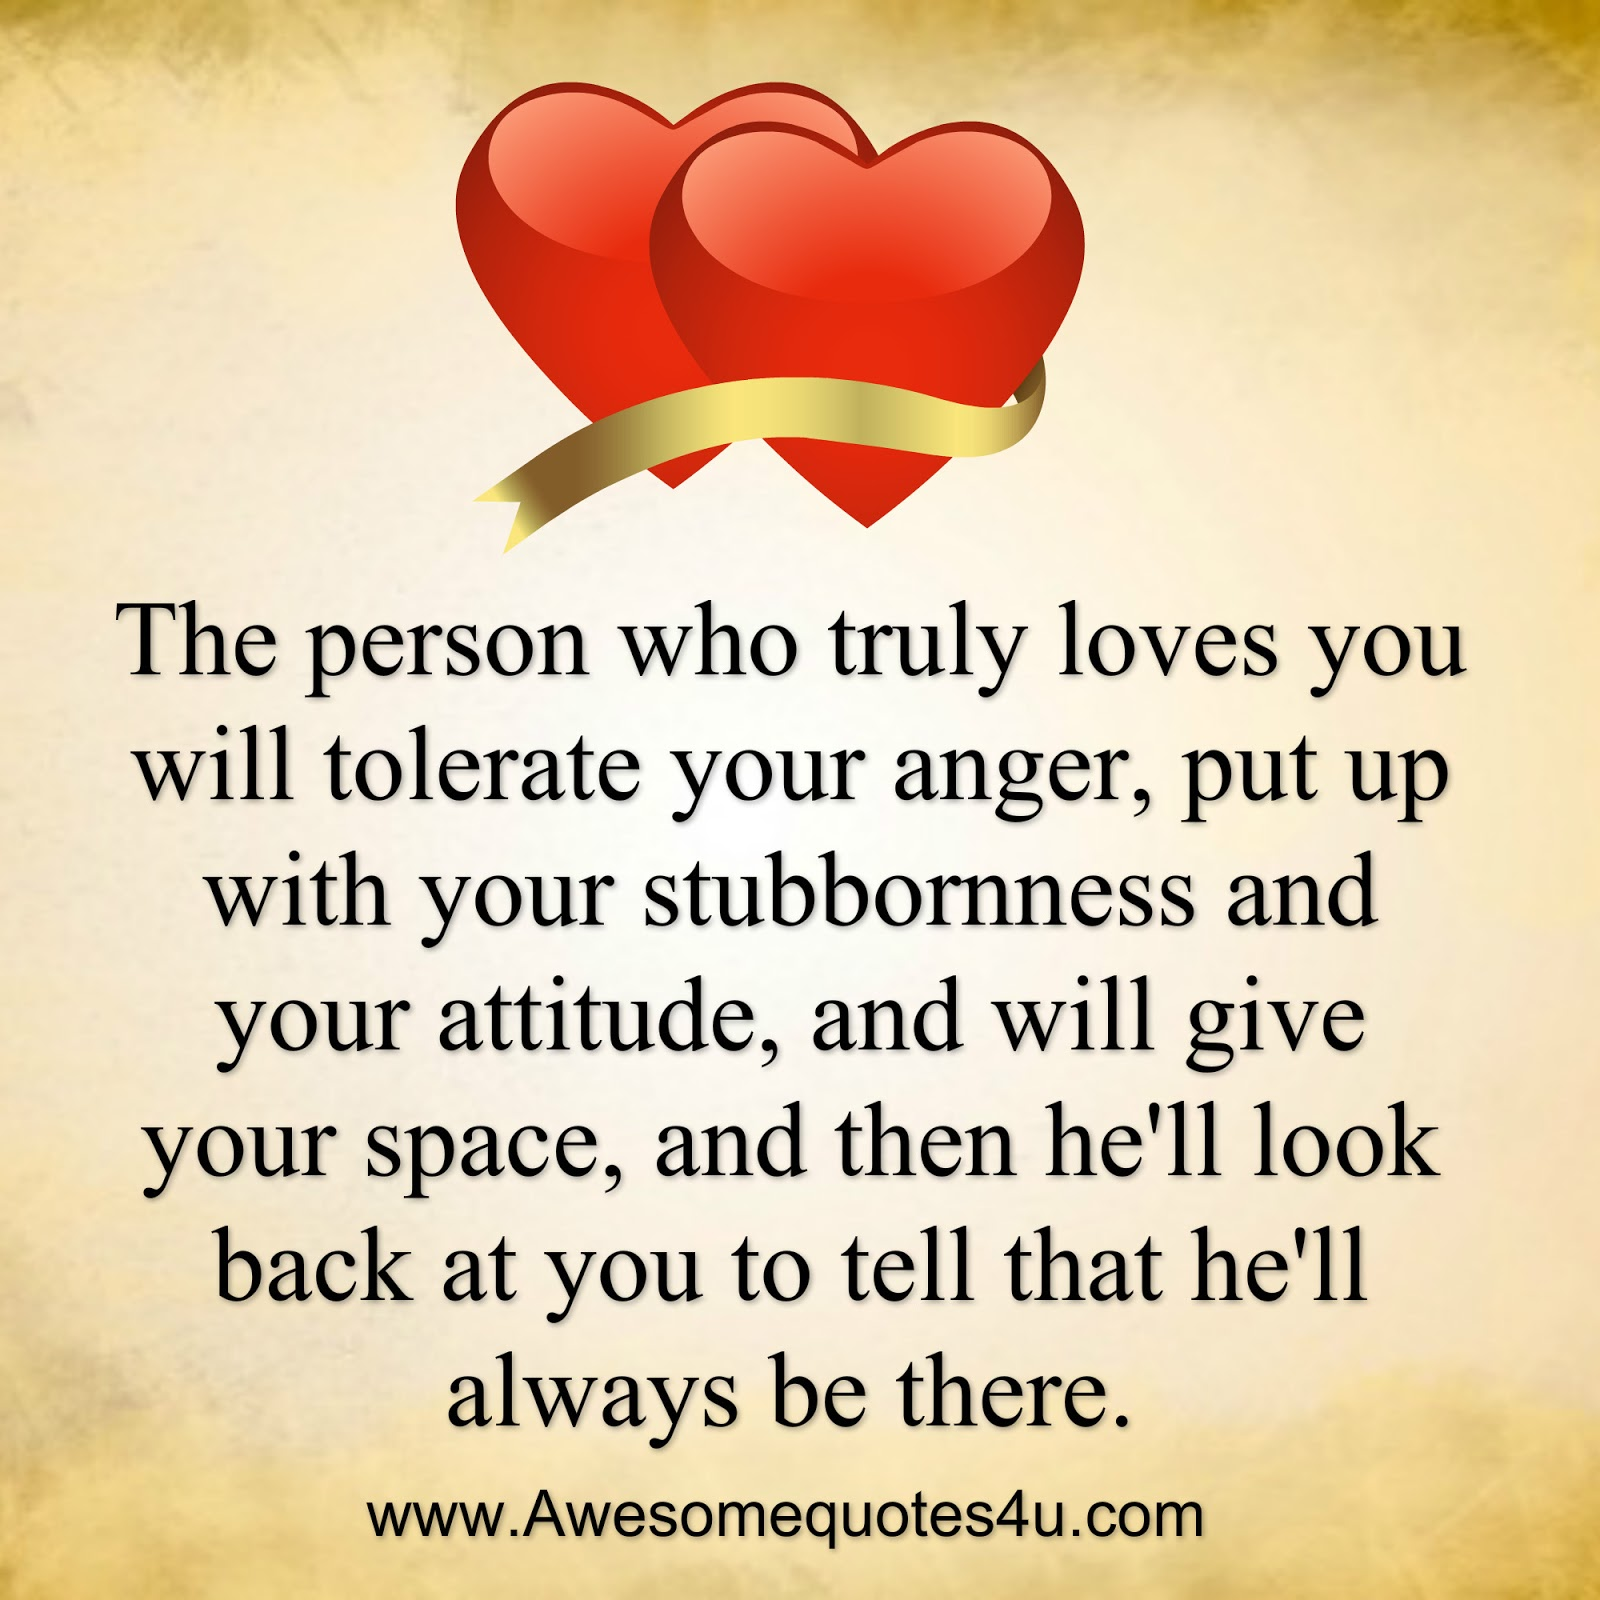 Awesome Quotes: The Person Who Truly Loves You